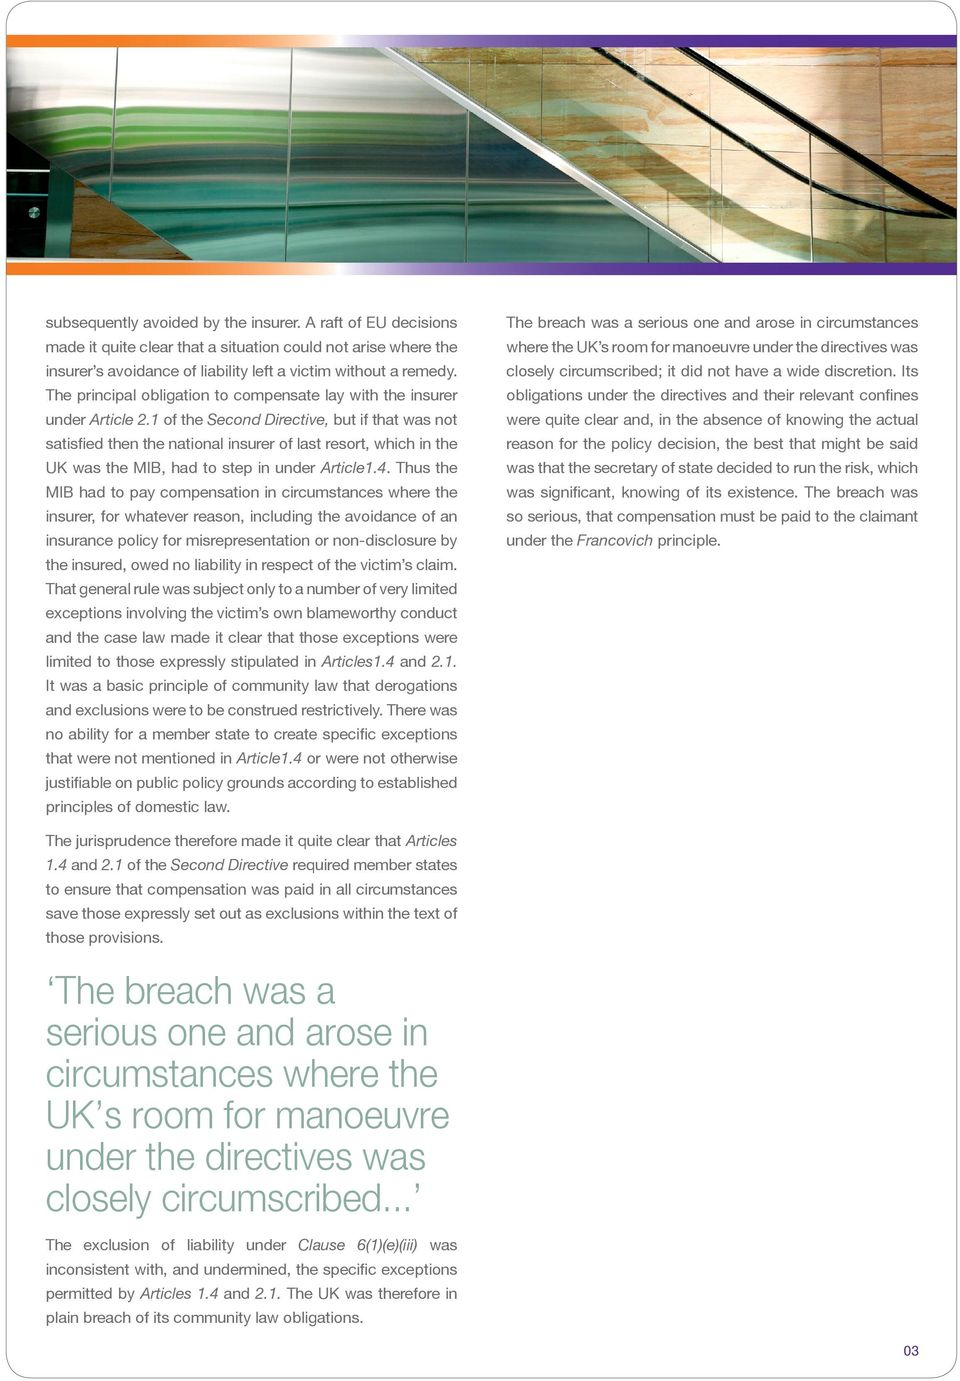 1 of the Second Directive, but if that was not satisfied then the national insurer of last resort, which in the UK was the MIB, had to step in under Article1.4.